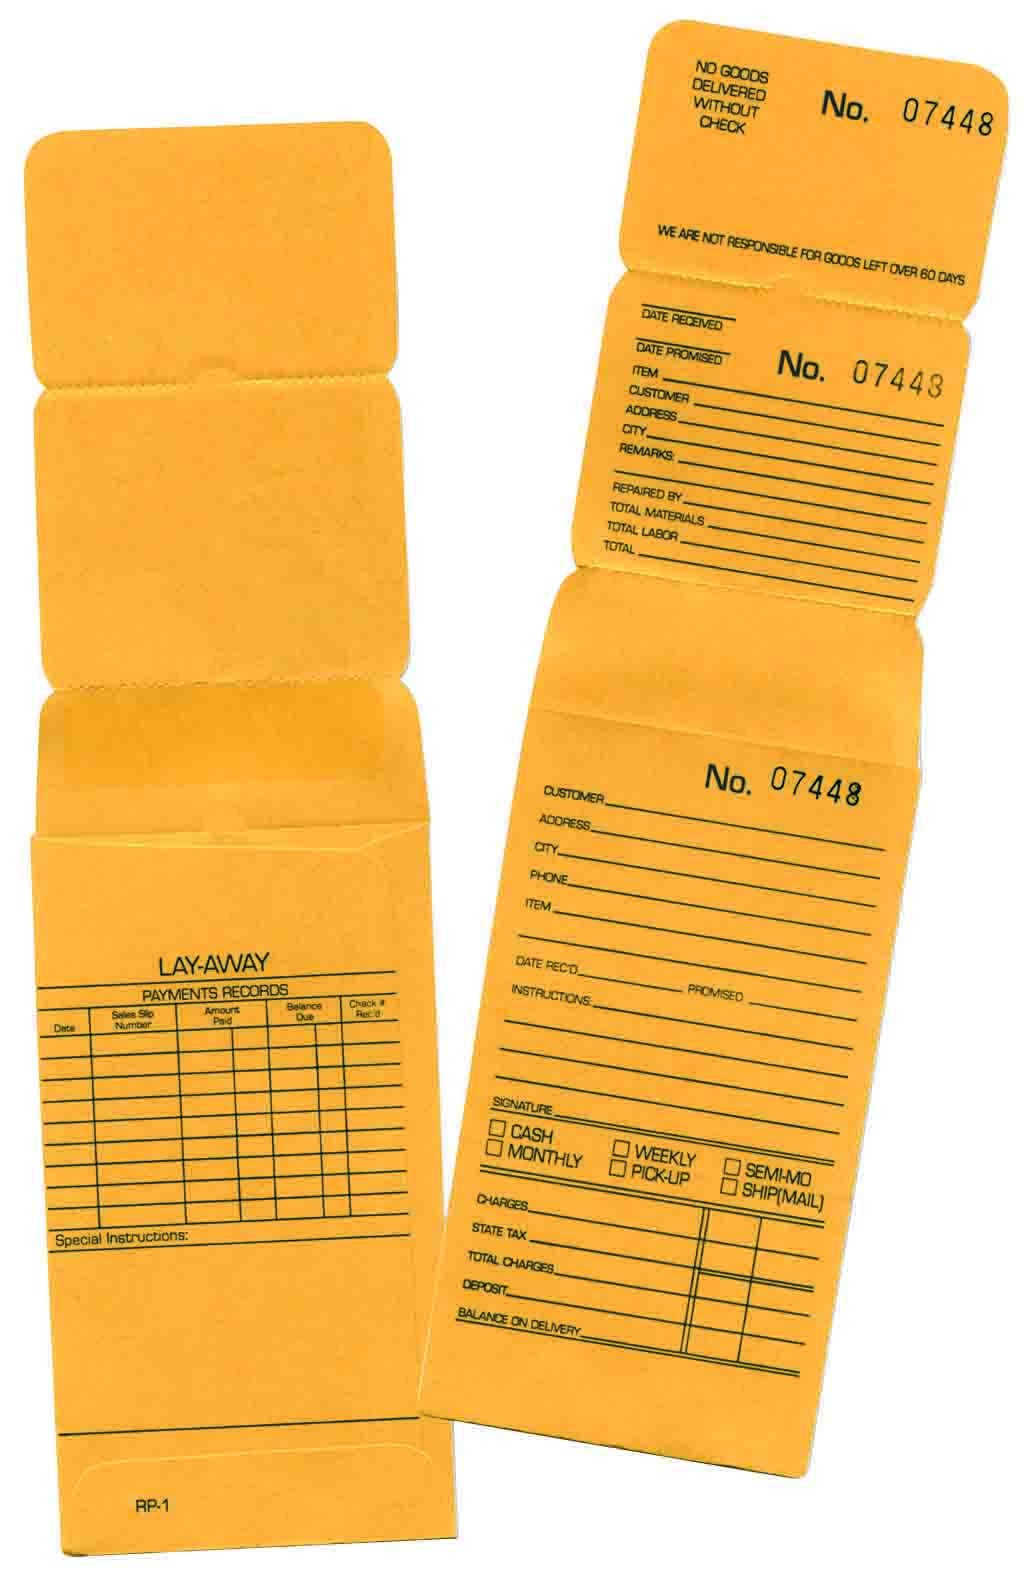 100 Jewelry Repair Envelopes Numbered in Consecutive Order by KD